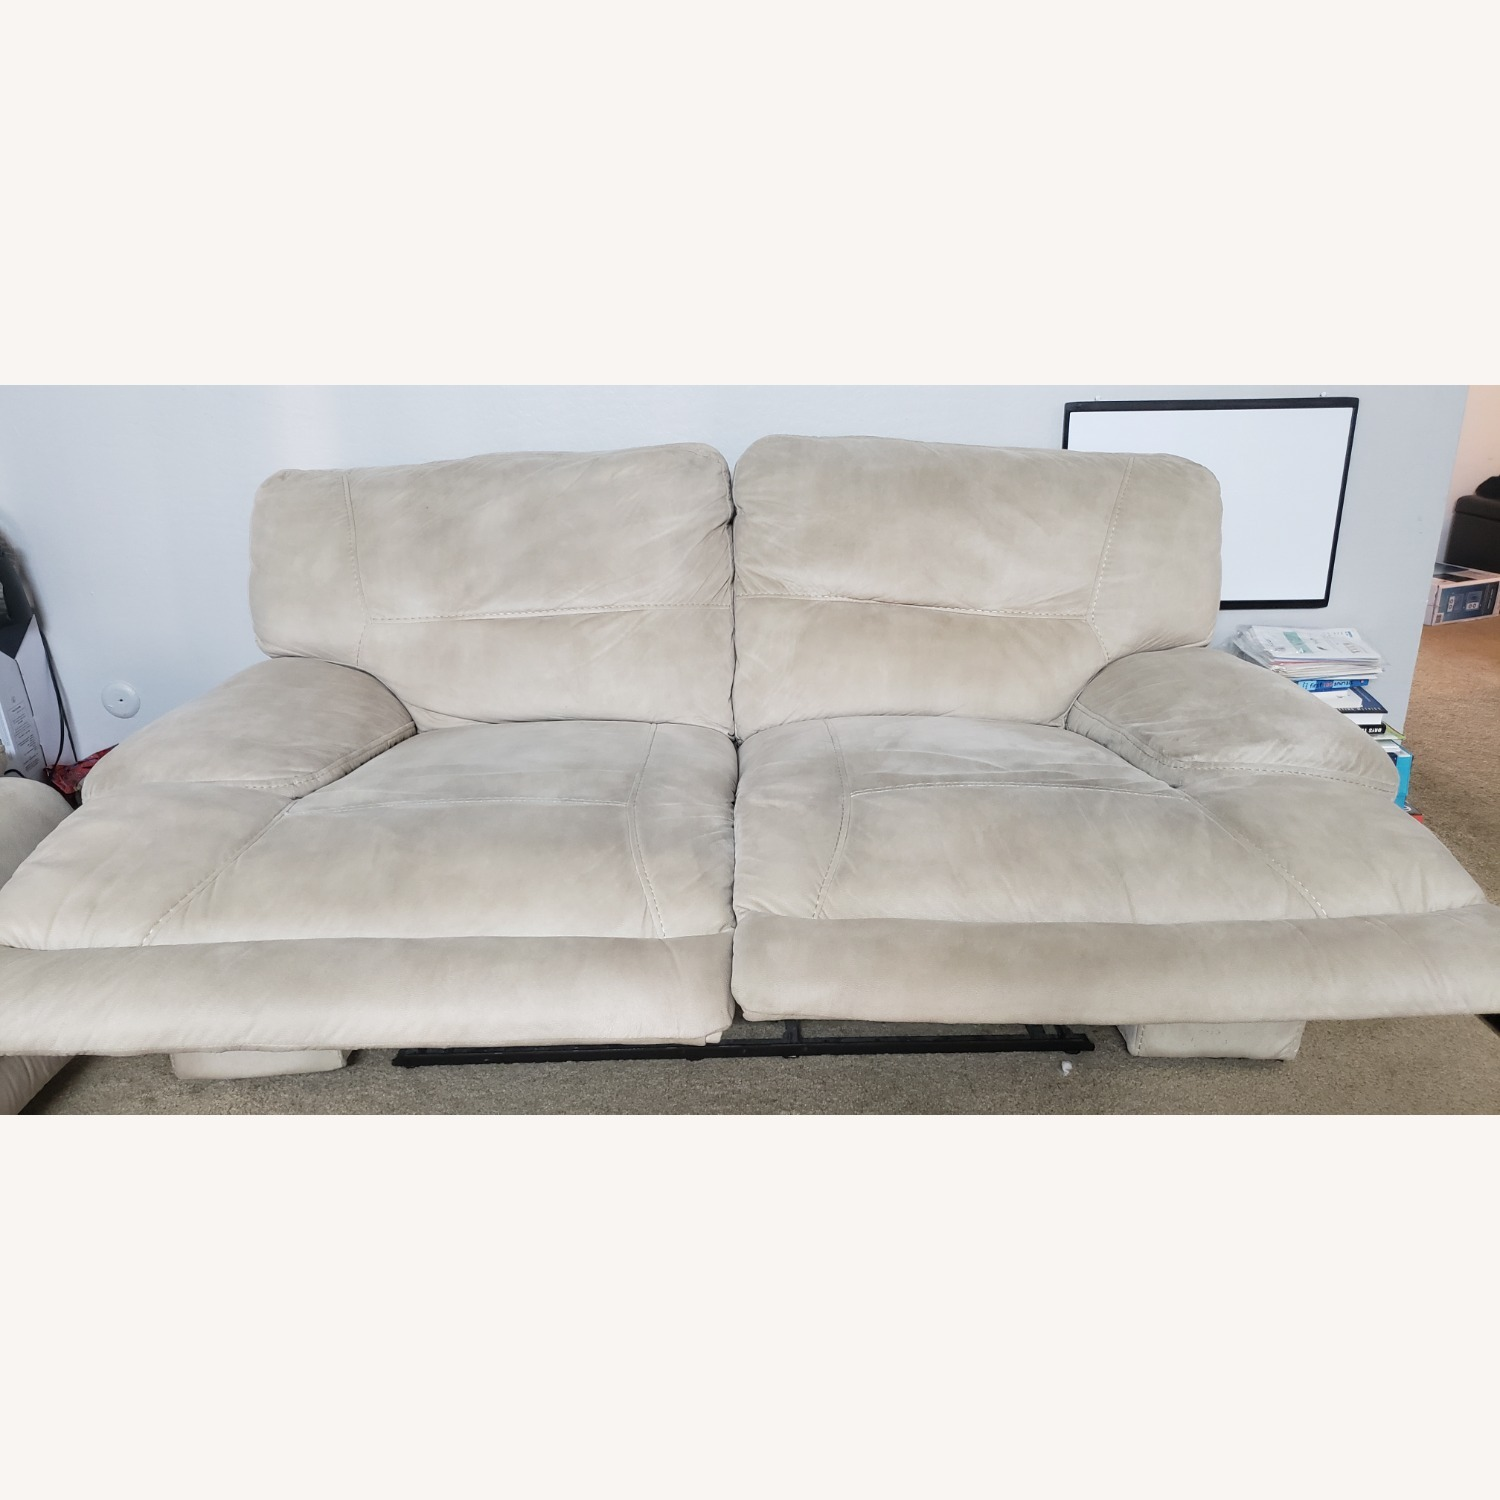 Rooms To Go Love Seat with Recliner - image-1